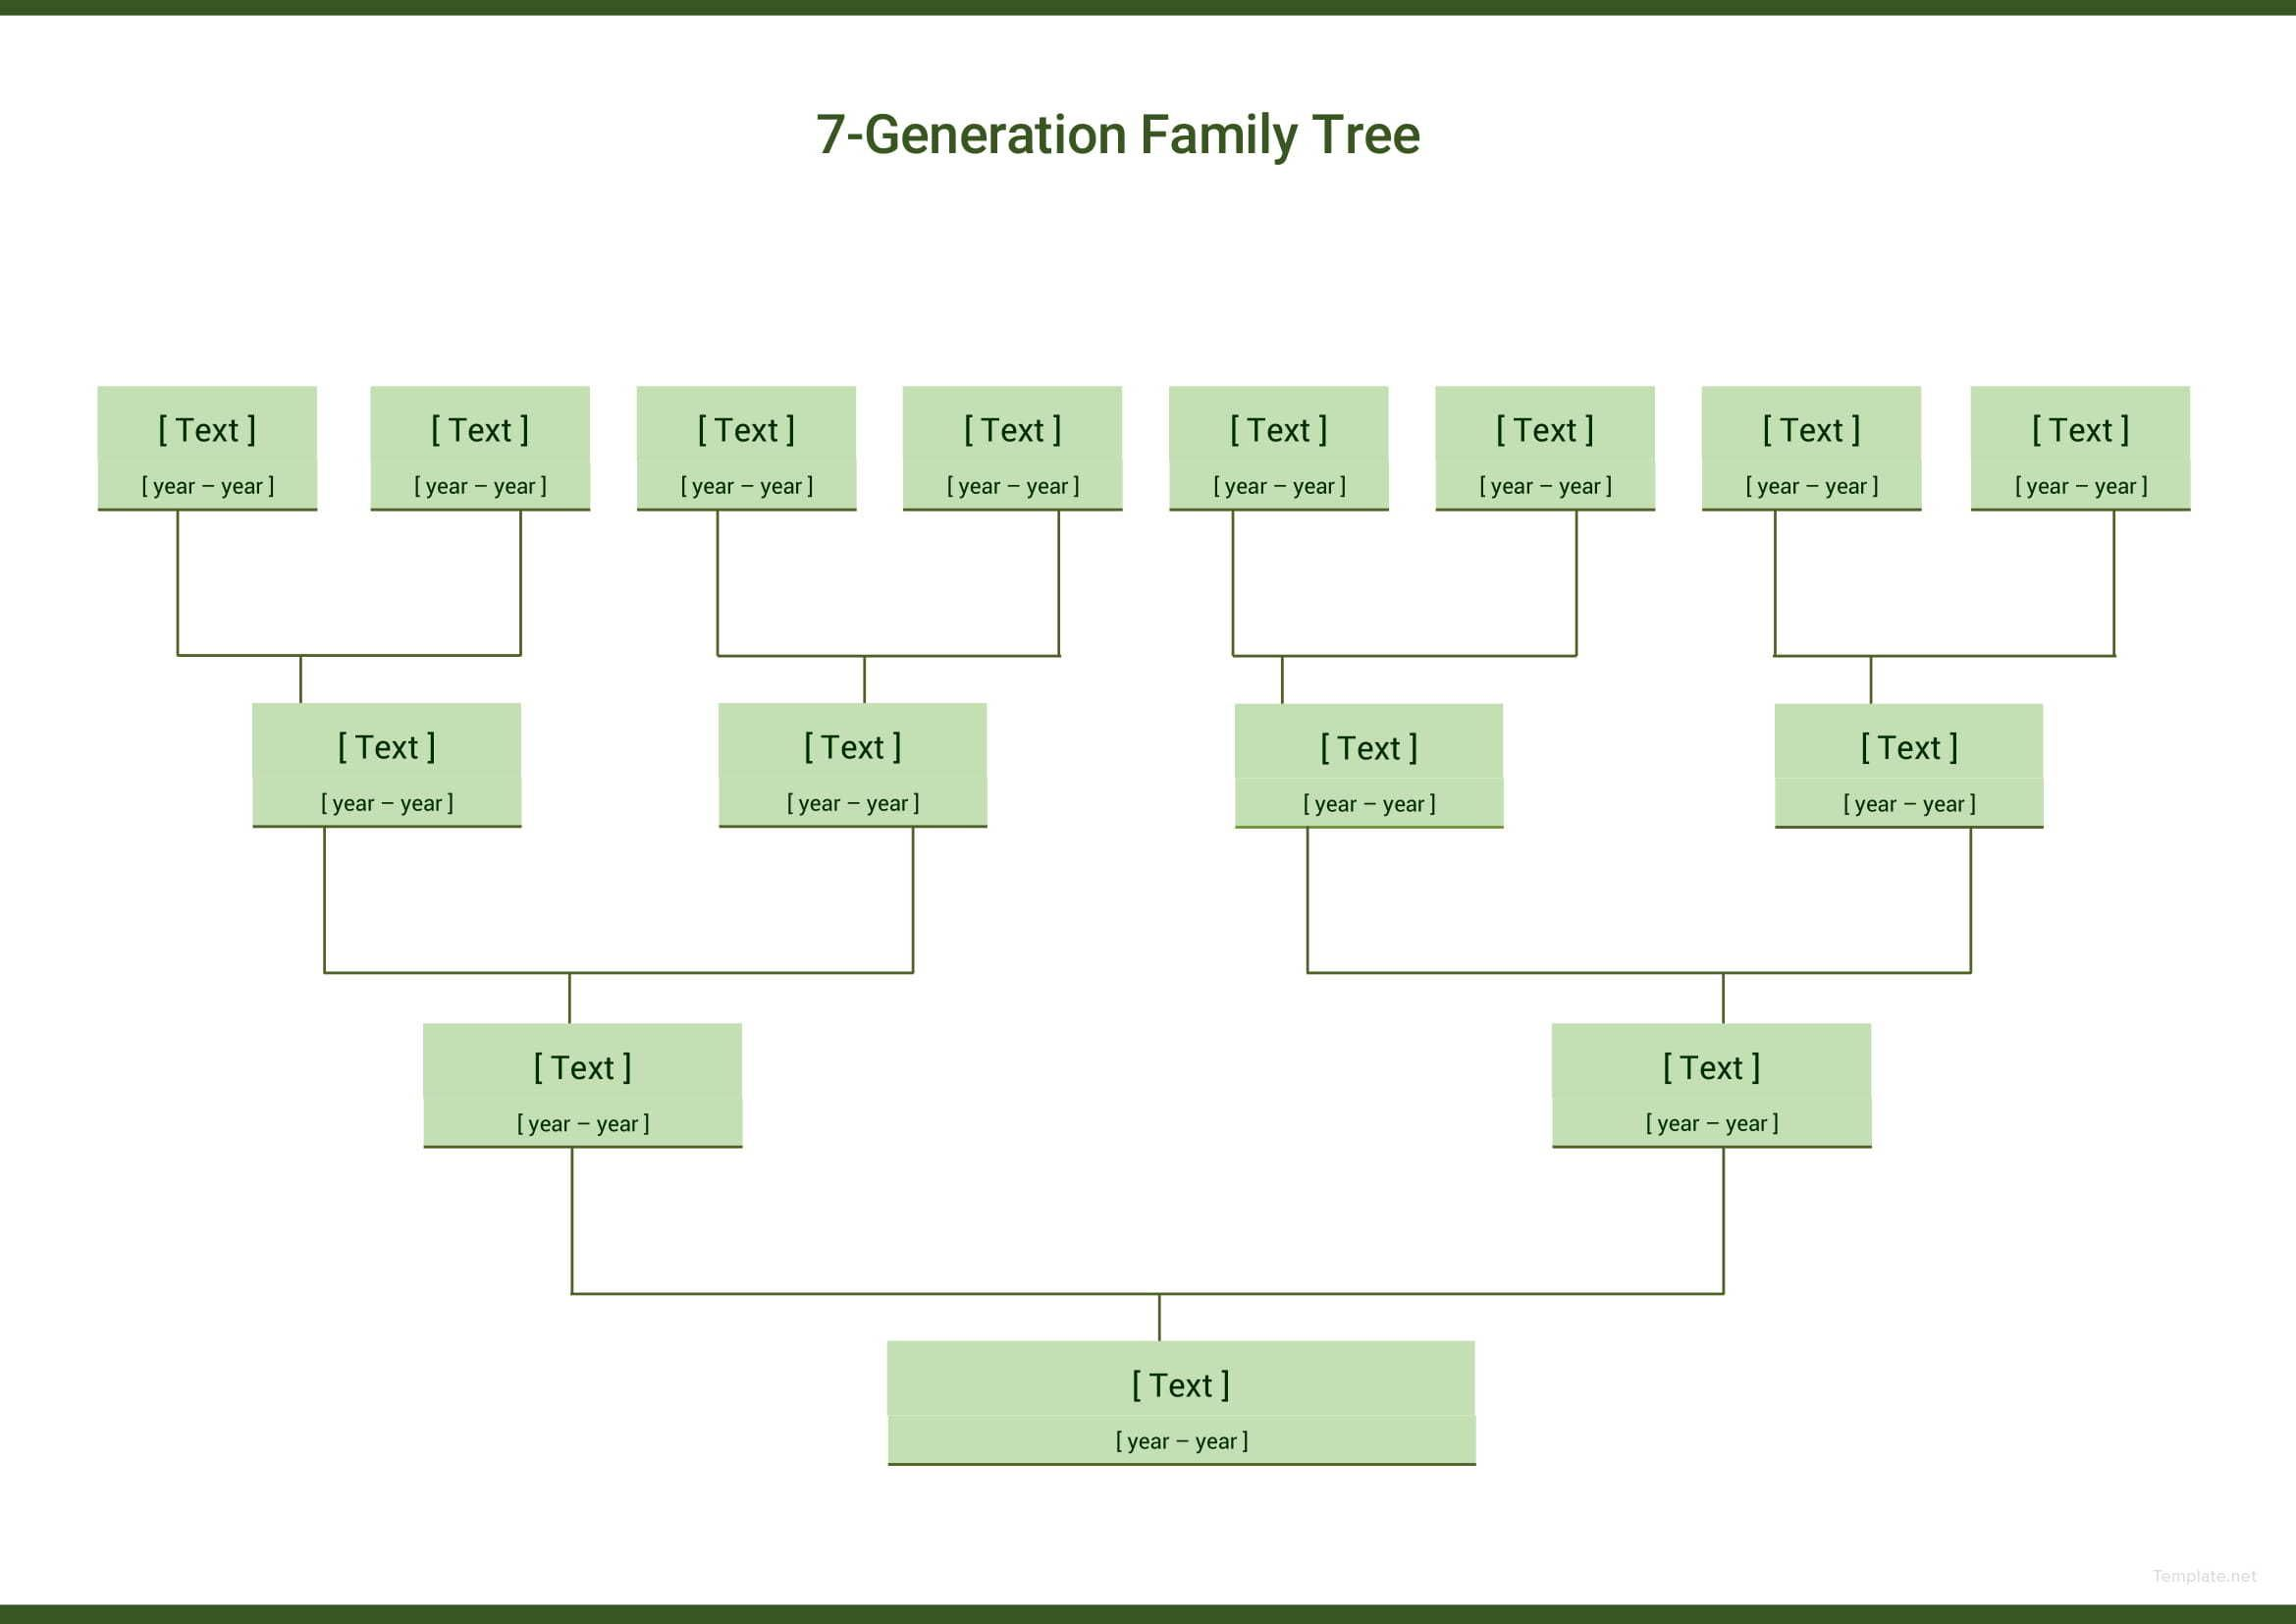 007 Staggering 7 Generation Family Tree Template High Def  Blank Free EditableFull